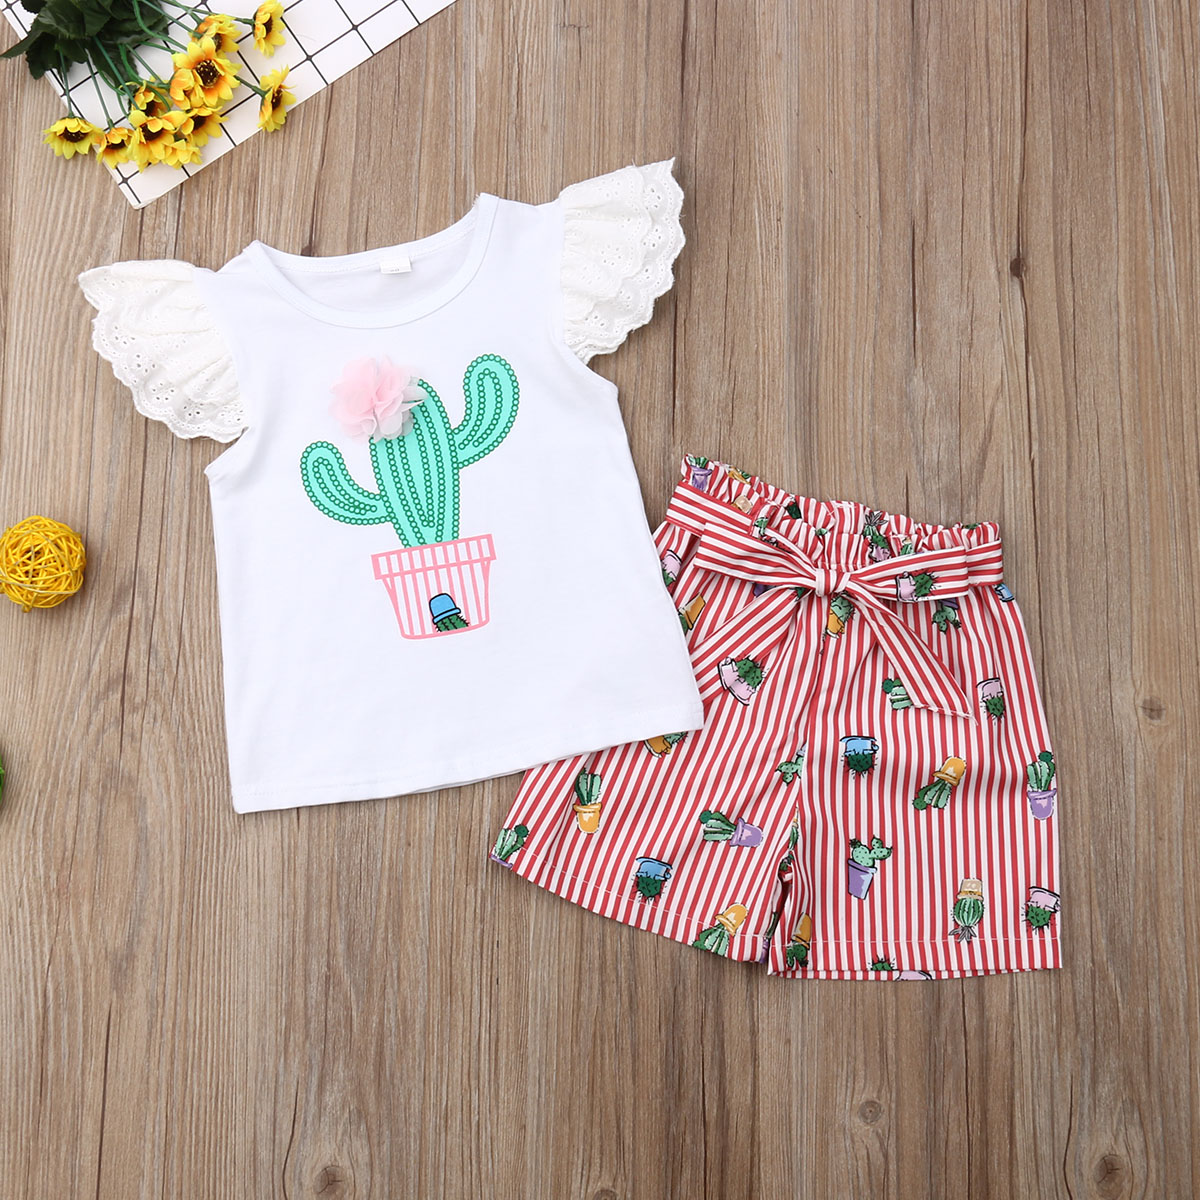 Cactus Toddler Shorts Clothes Set Kids Baby Girl White Sleeveless T Shirt Red Stripe Pants Outfits Children in Clothing Sets from Mother Kids